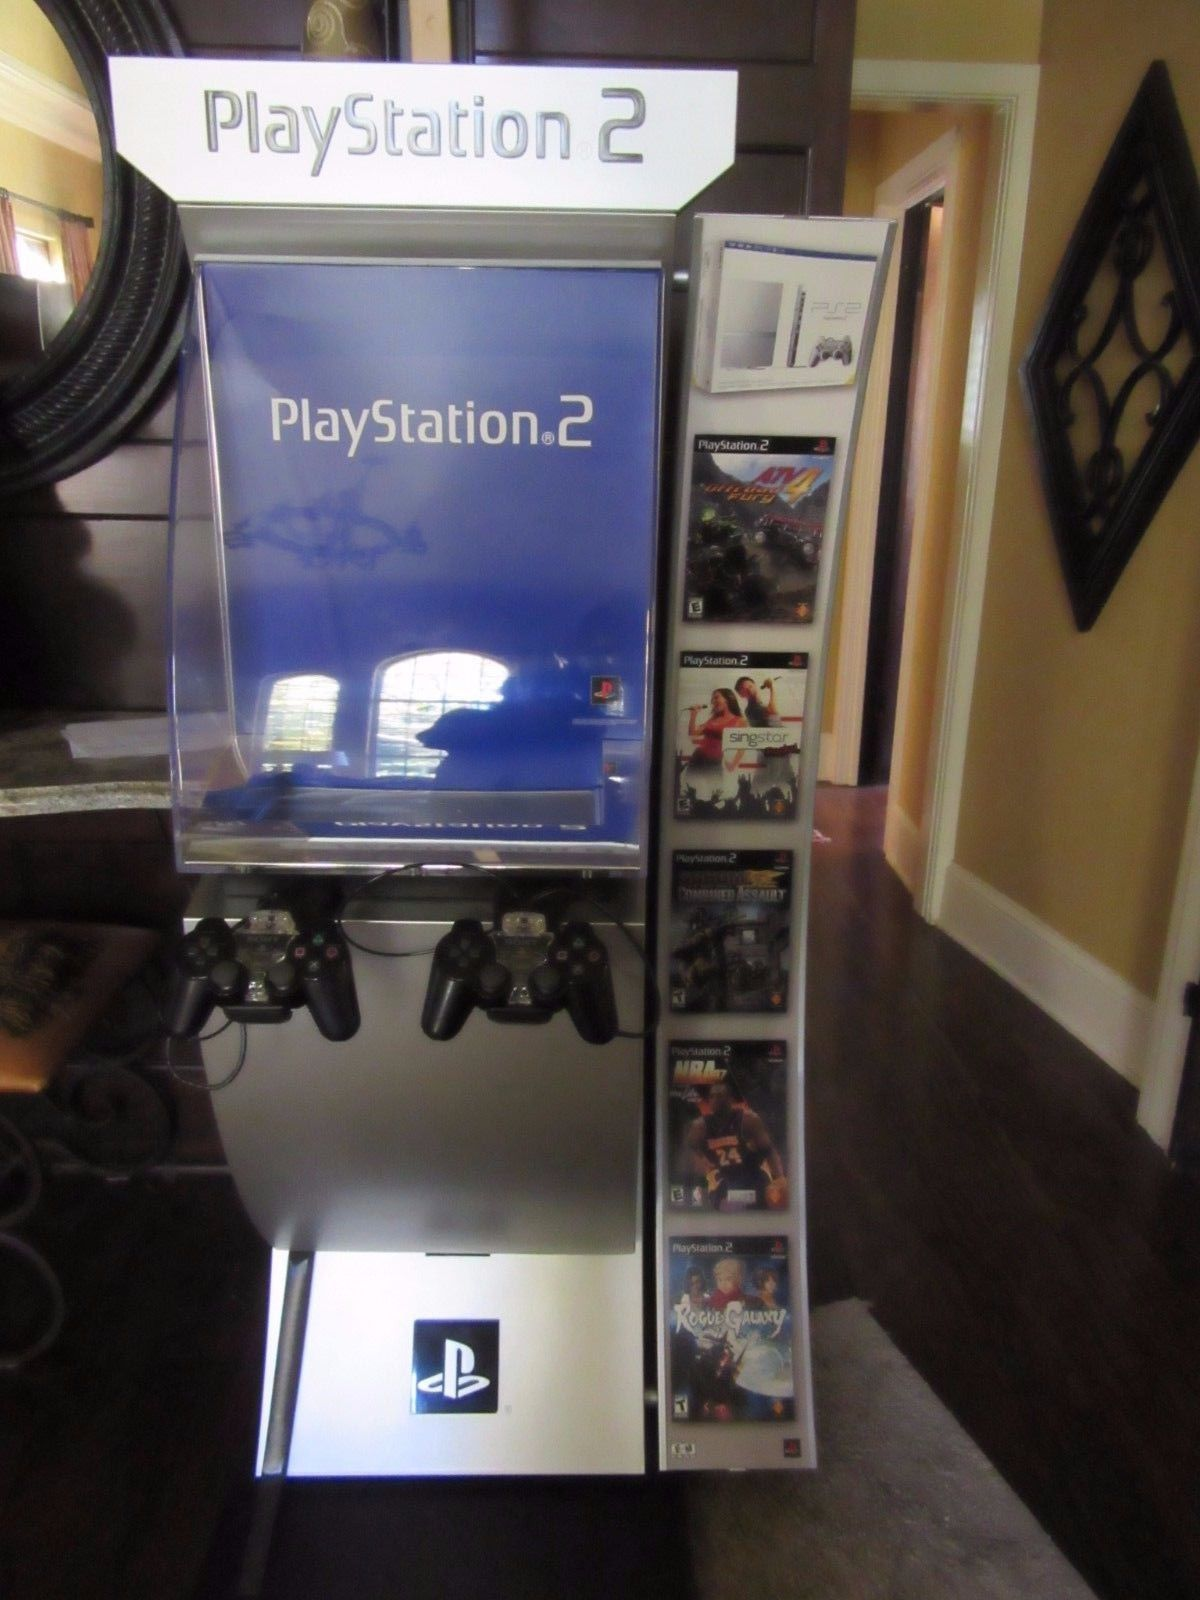 playstation 2 kiosk, ps2 kiosk